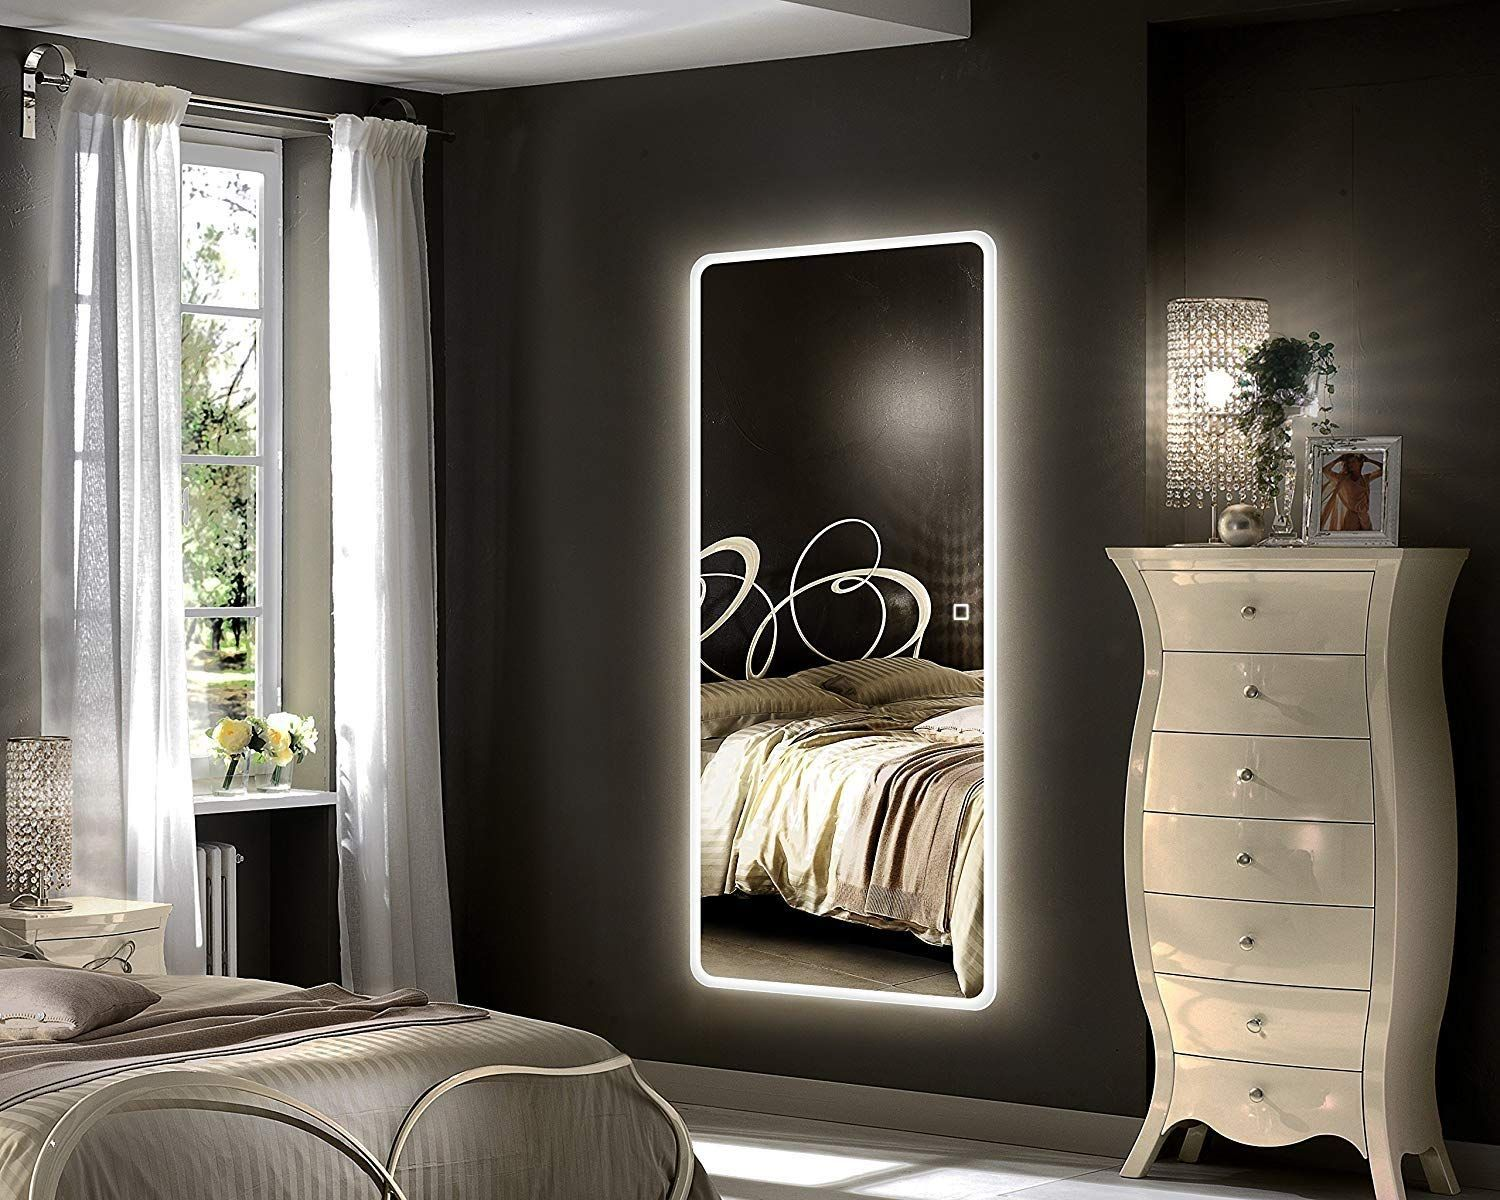 Elegant And Space Saving Led Wall Mirror Smallspaces Mirrors Bedroom Teens Bathroom H With Images Full Length Mirror In Bedroom Bedroom Mirror Mirror Wall Bedroom